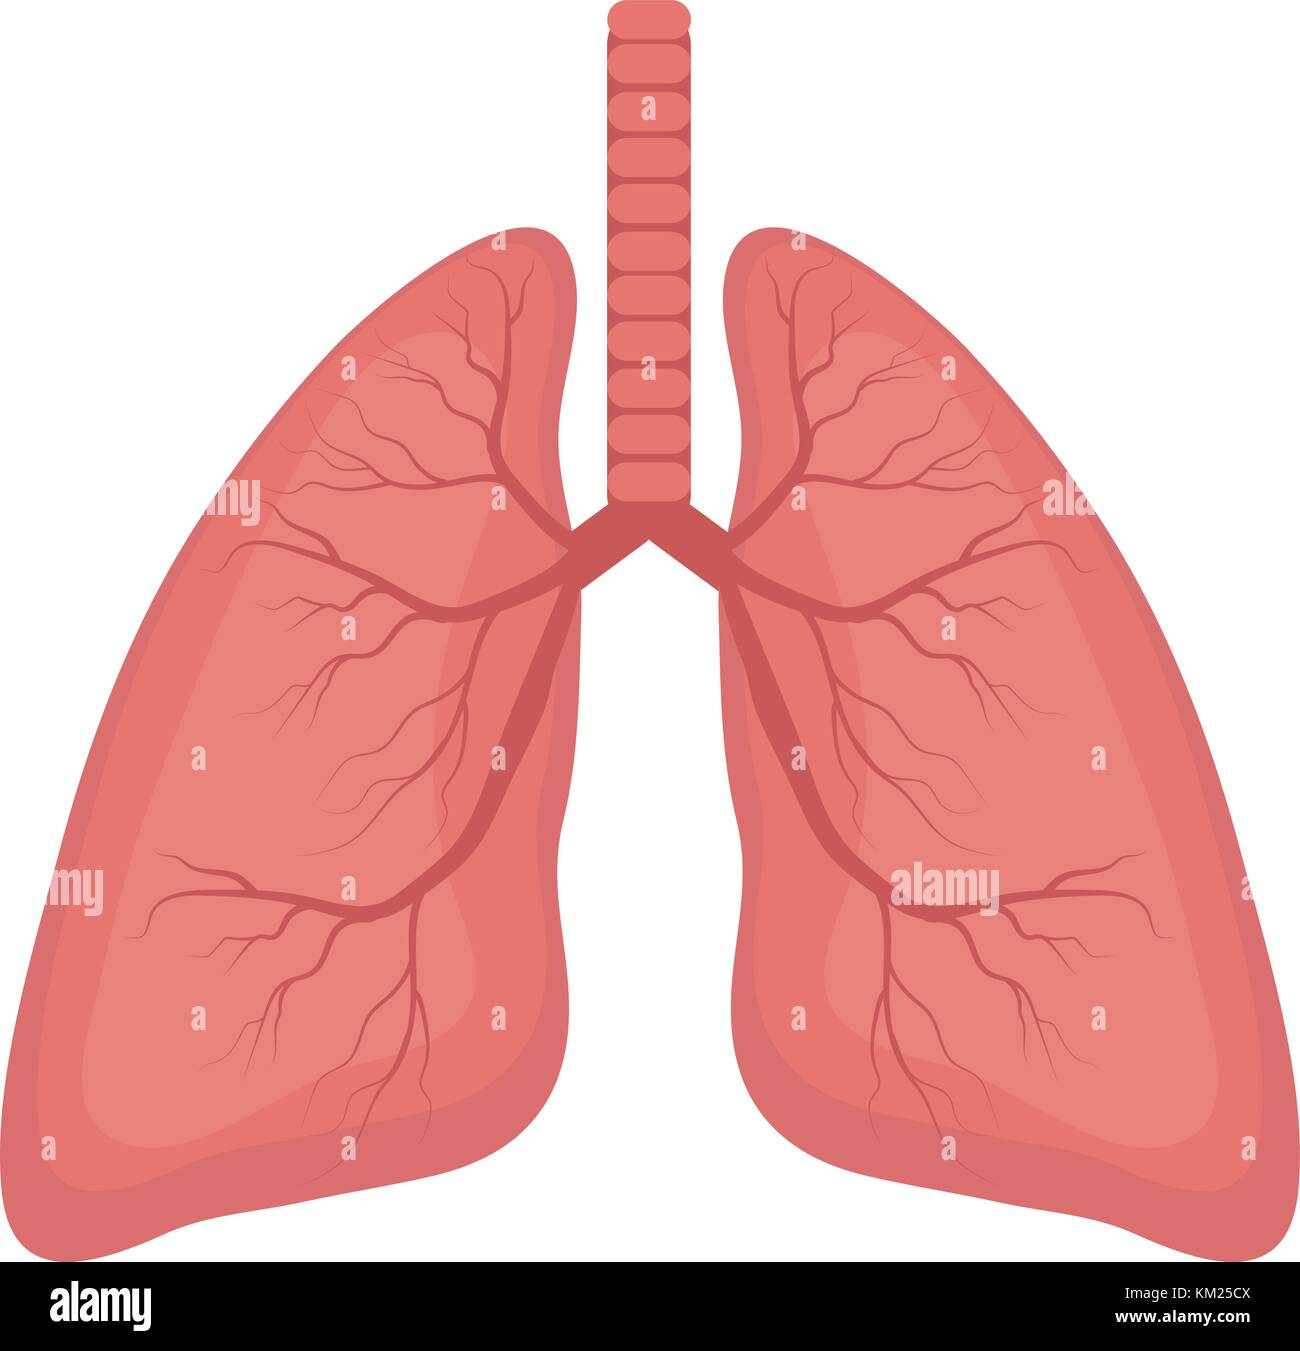 Healthy Lungs Stock Photos Amp Healthy Lungs Stock Images Alamy